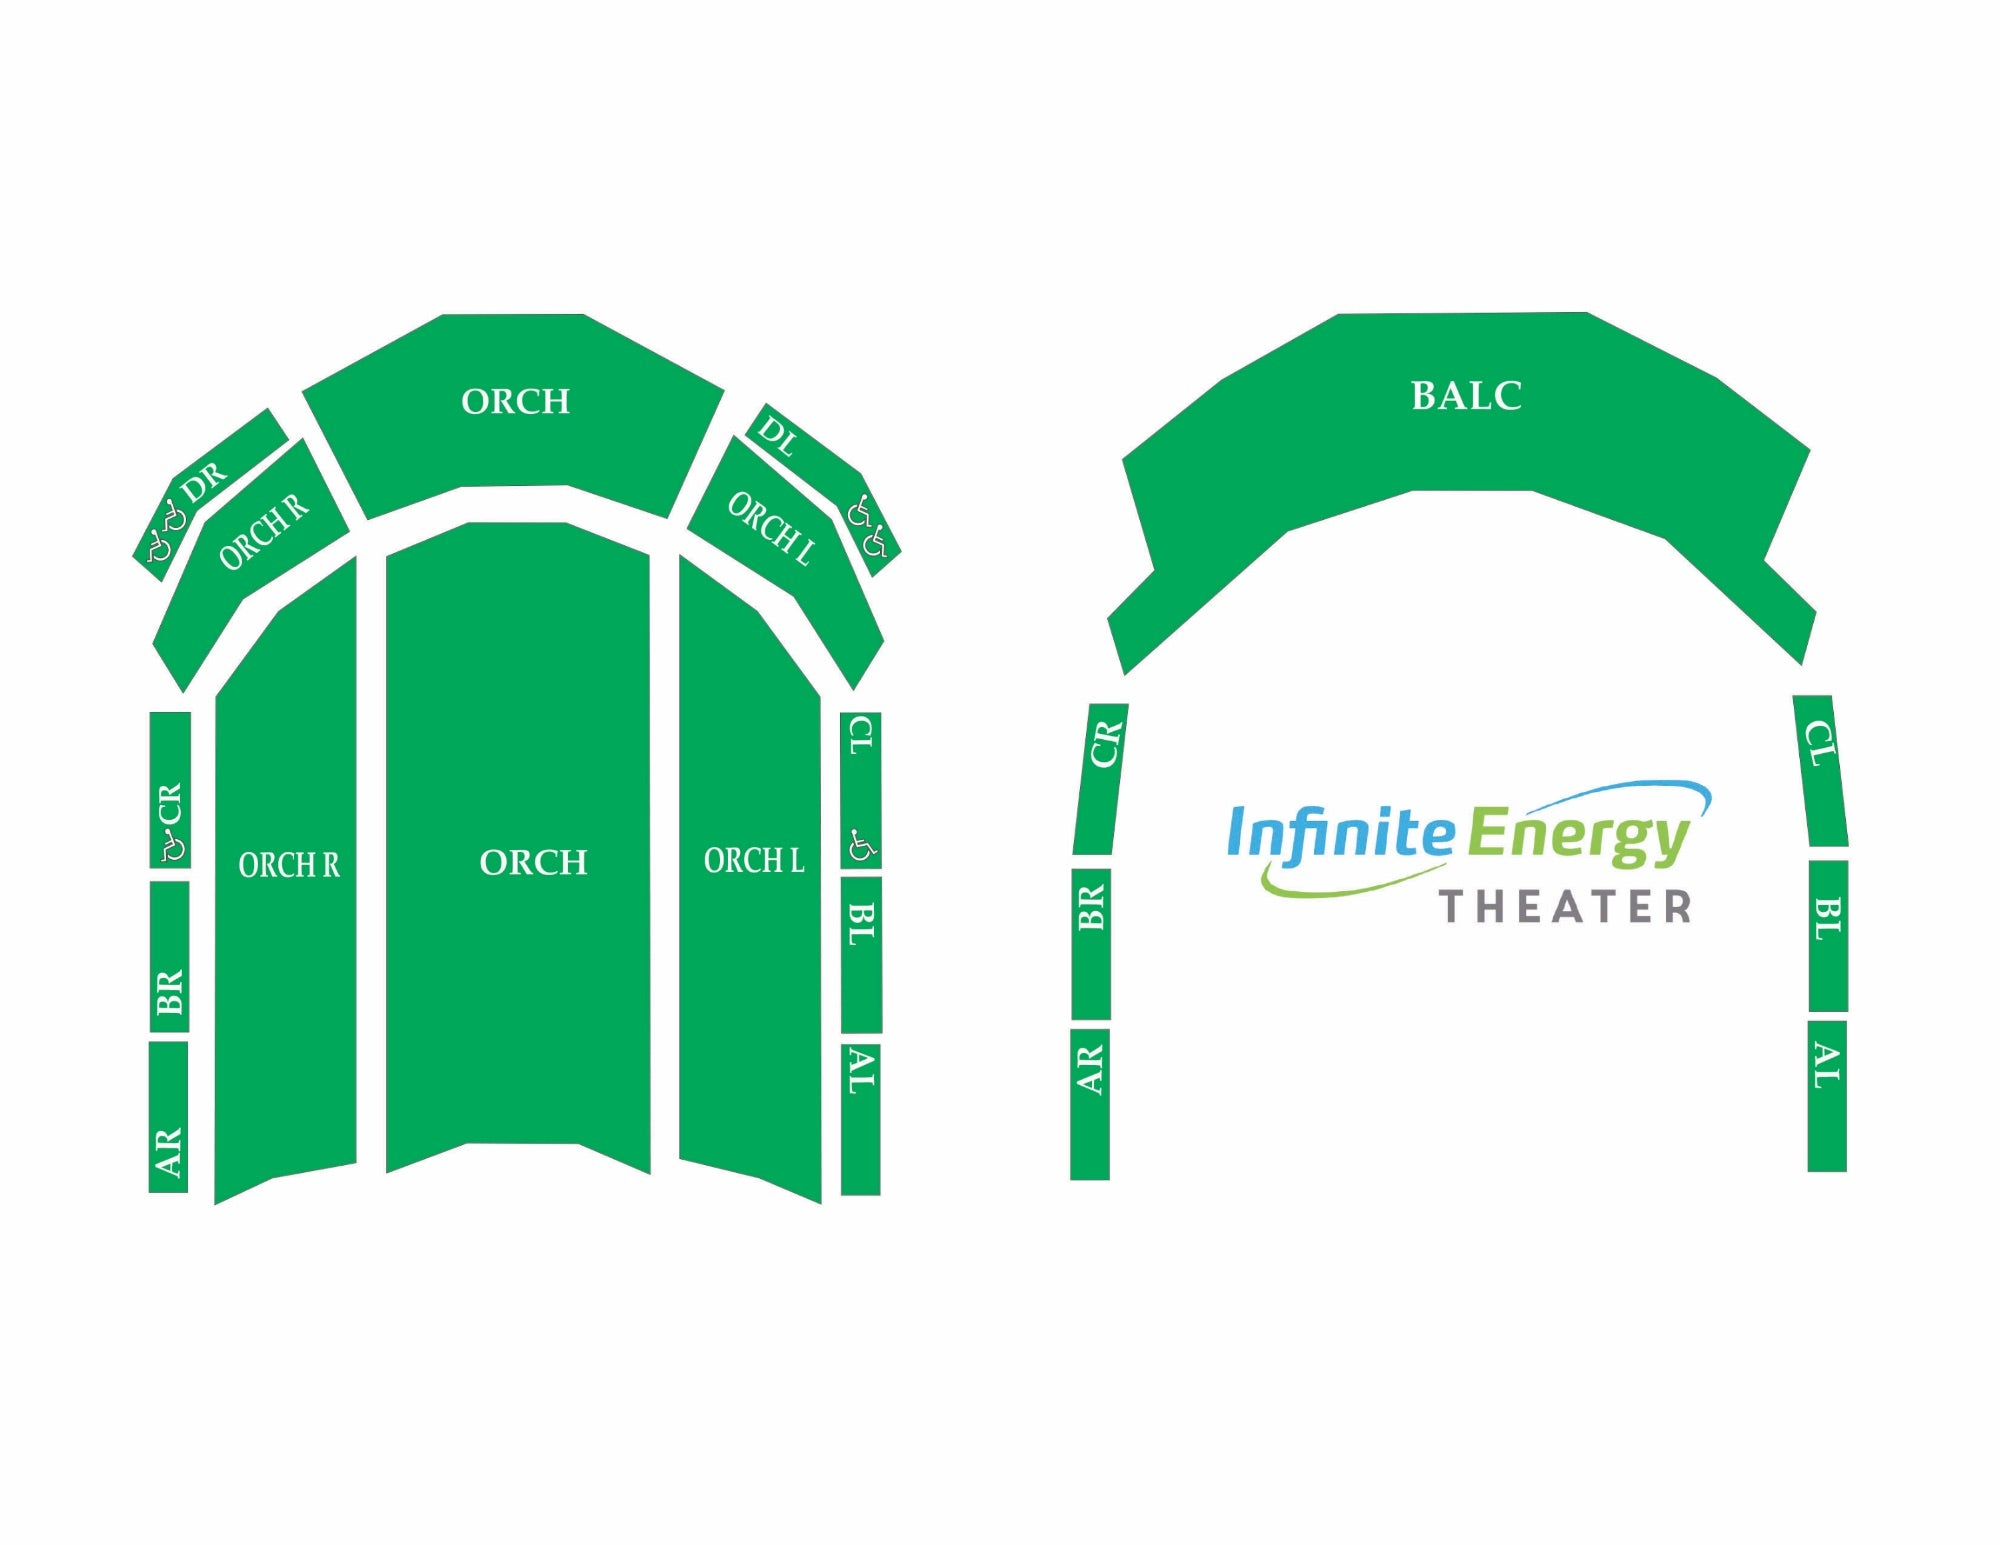 Click Here To View A Generic Seating Map Of Infinite Energy Theater